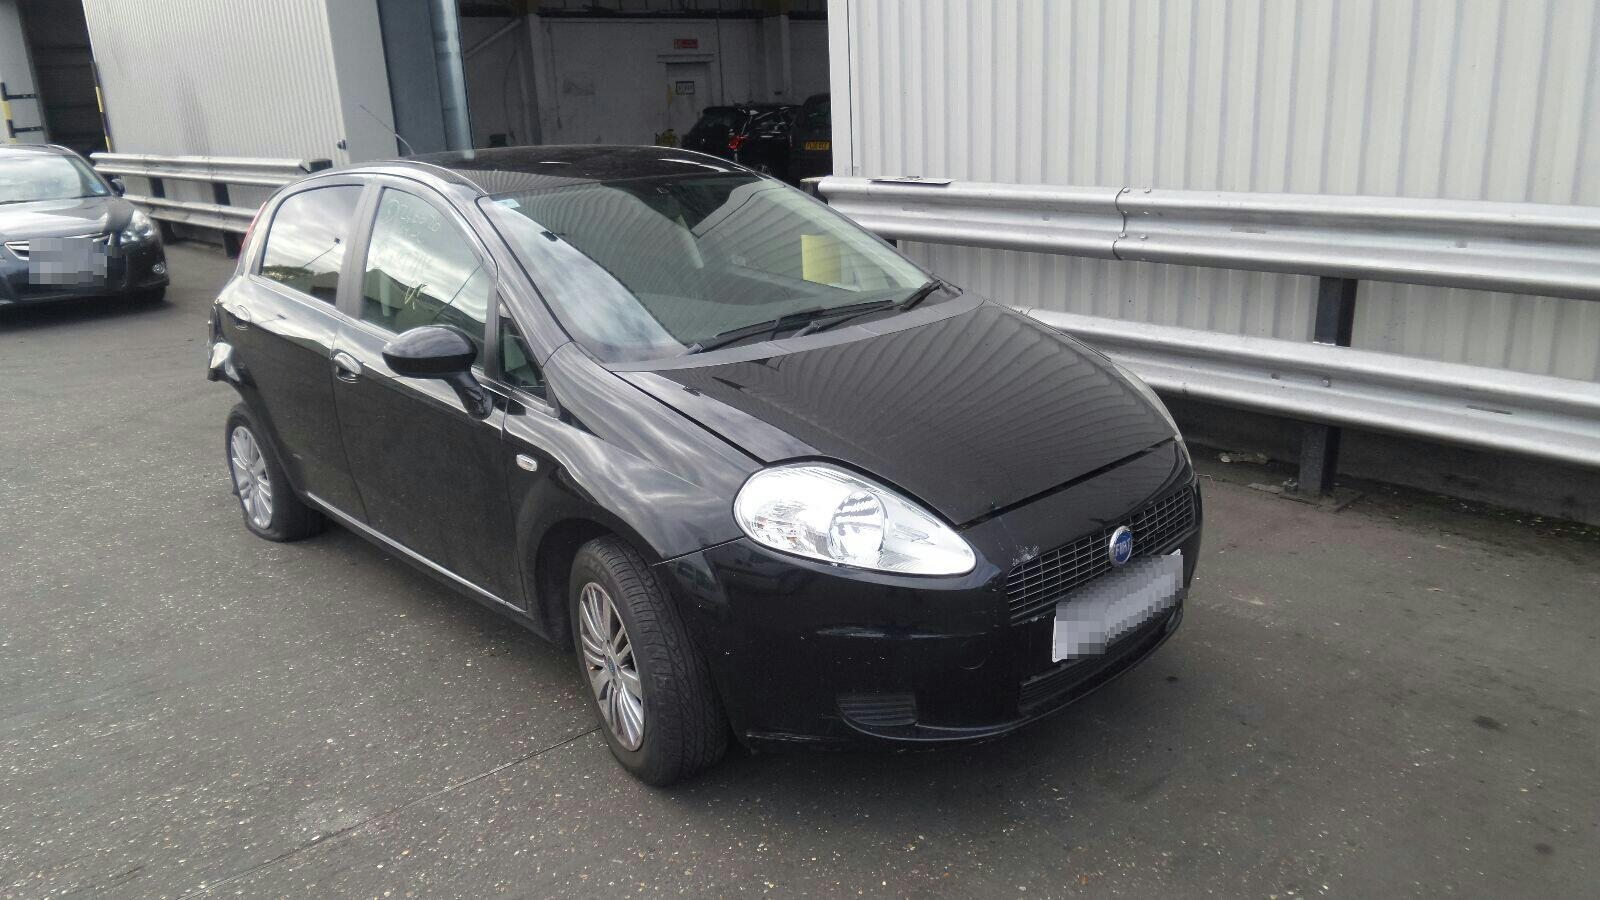 Image for a 2008 Fiat Grande Punto 1.2 Petrol 199A4.000 Engine